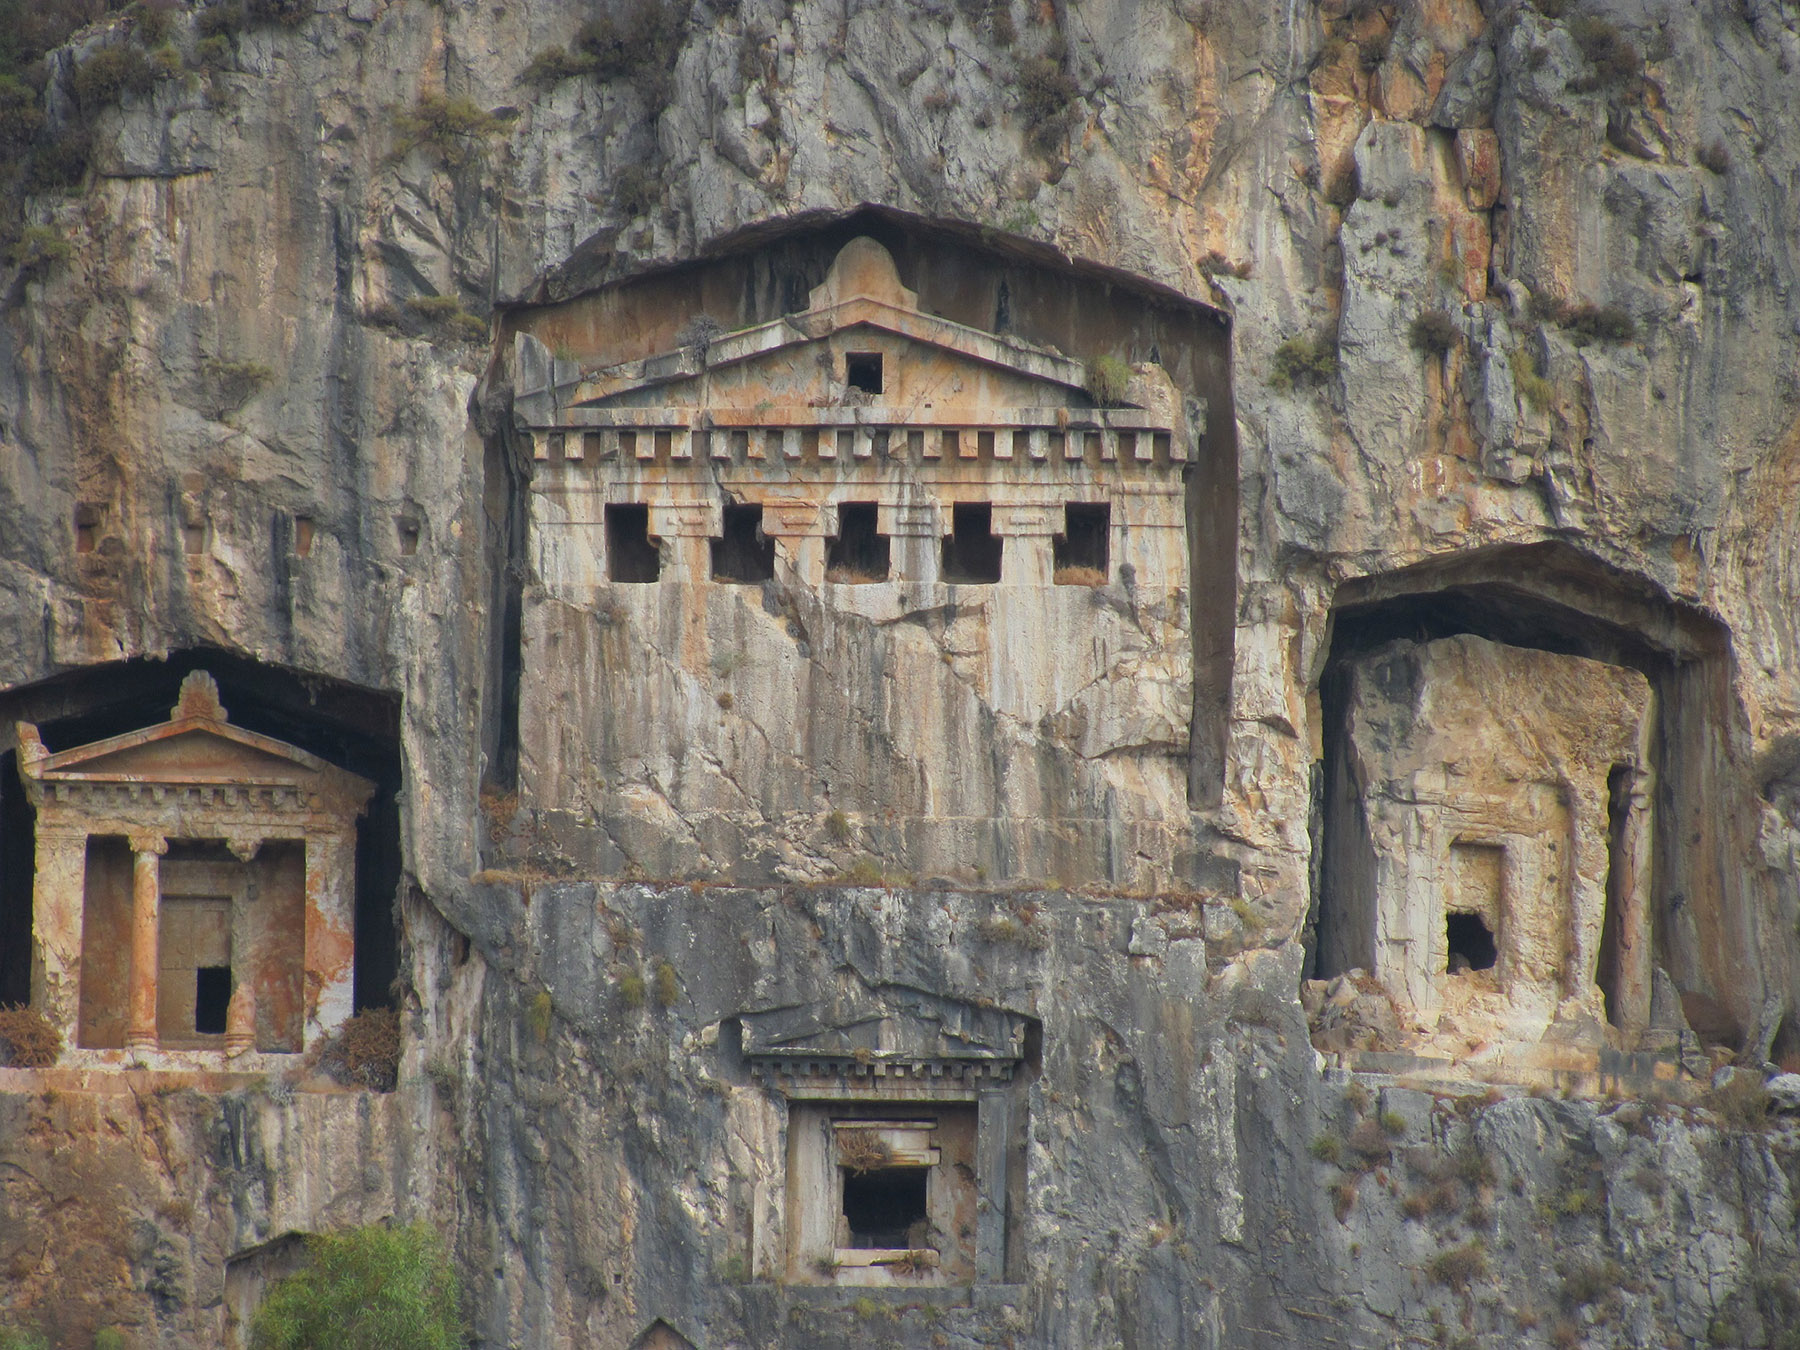 Amyntas Rock Tombs,Light Tours Vacation Activities, Holiday Locations,Rock Tombs 118